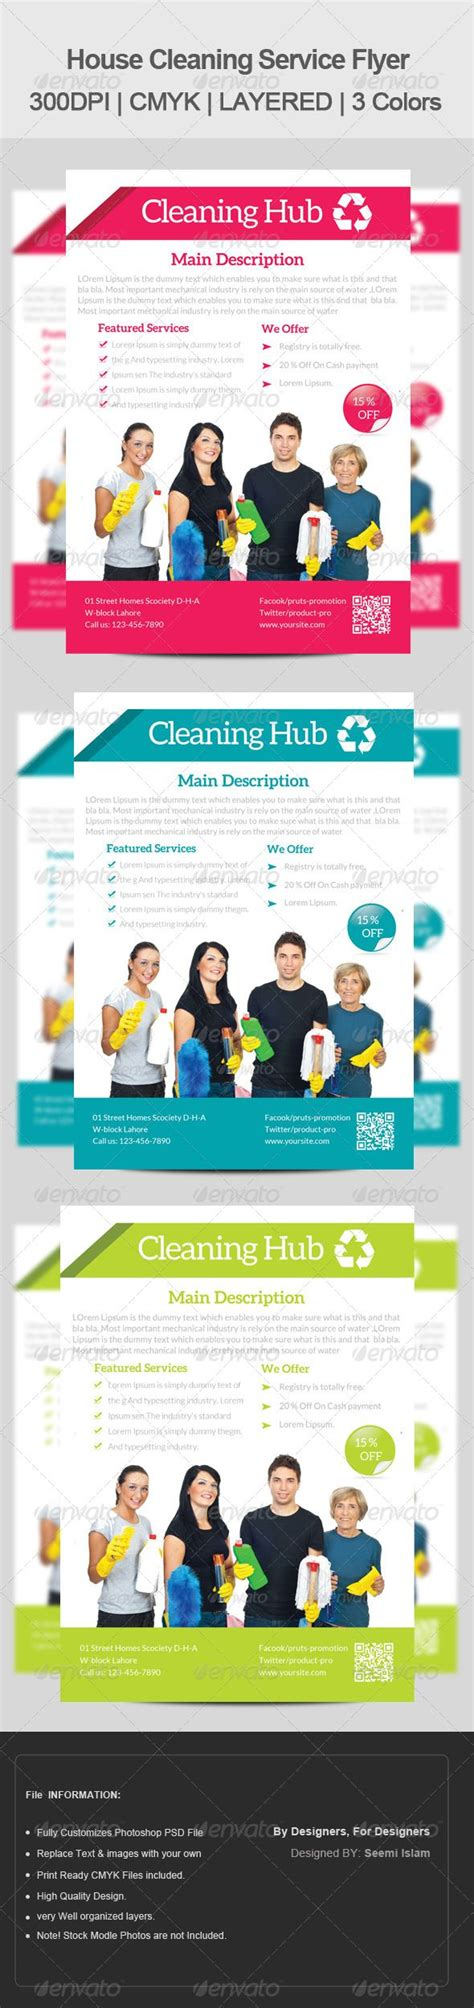 31 best images about cleaning service flyer on pinterest